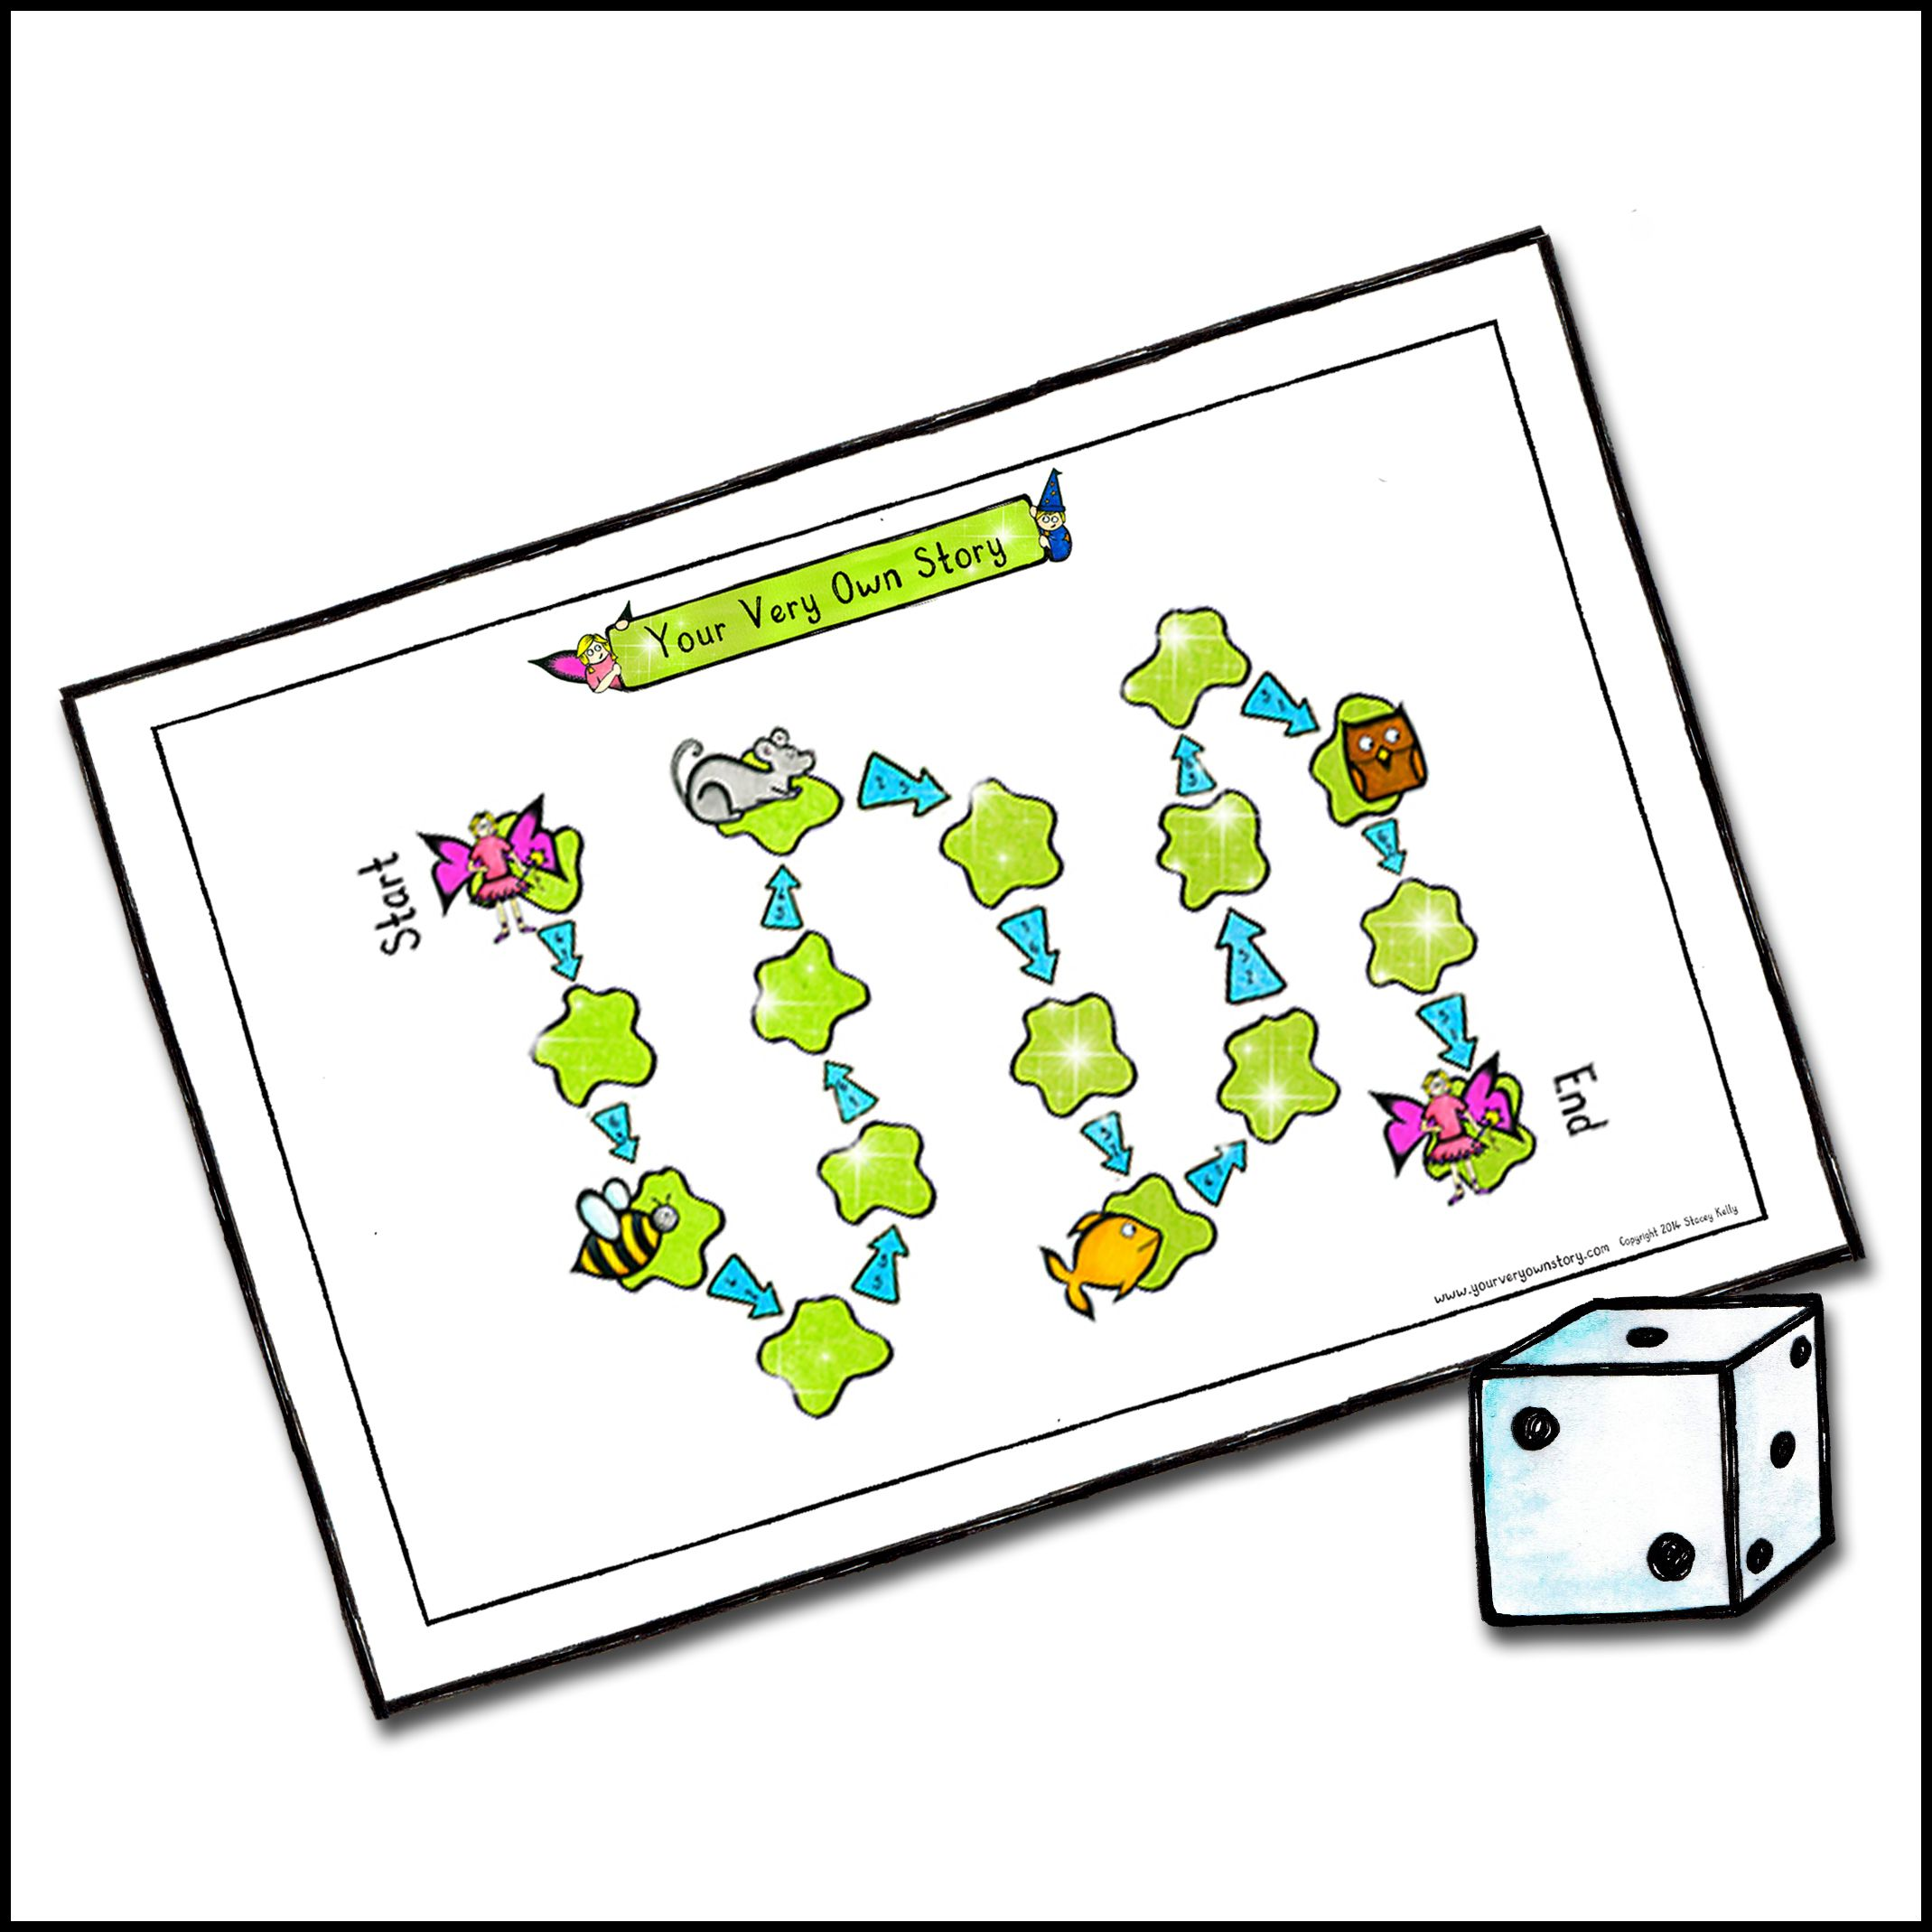 FREE Fairy Leapfrog Board Game Enjoy Playing This Fun Dice Game